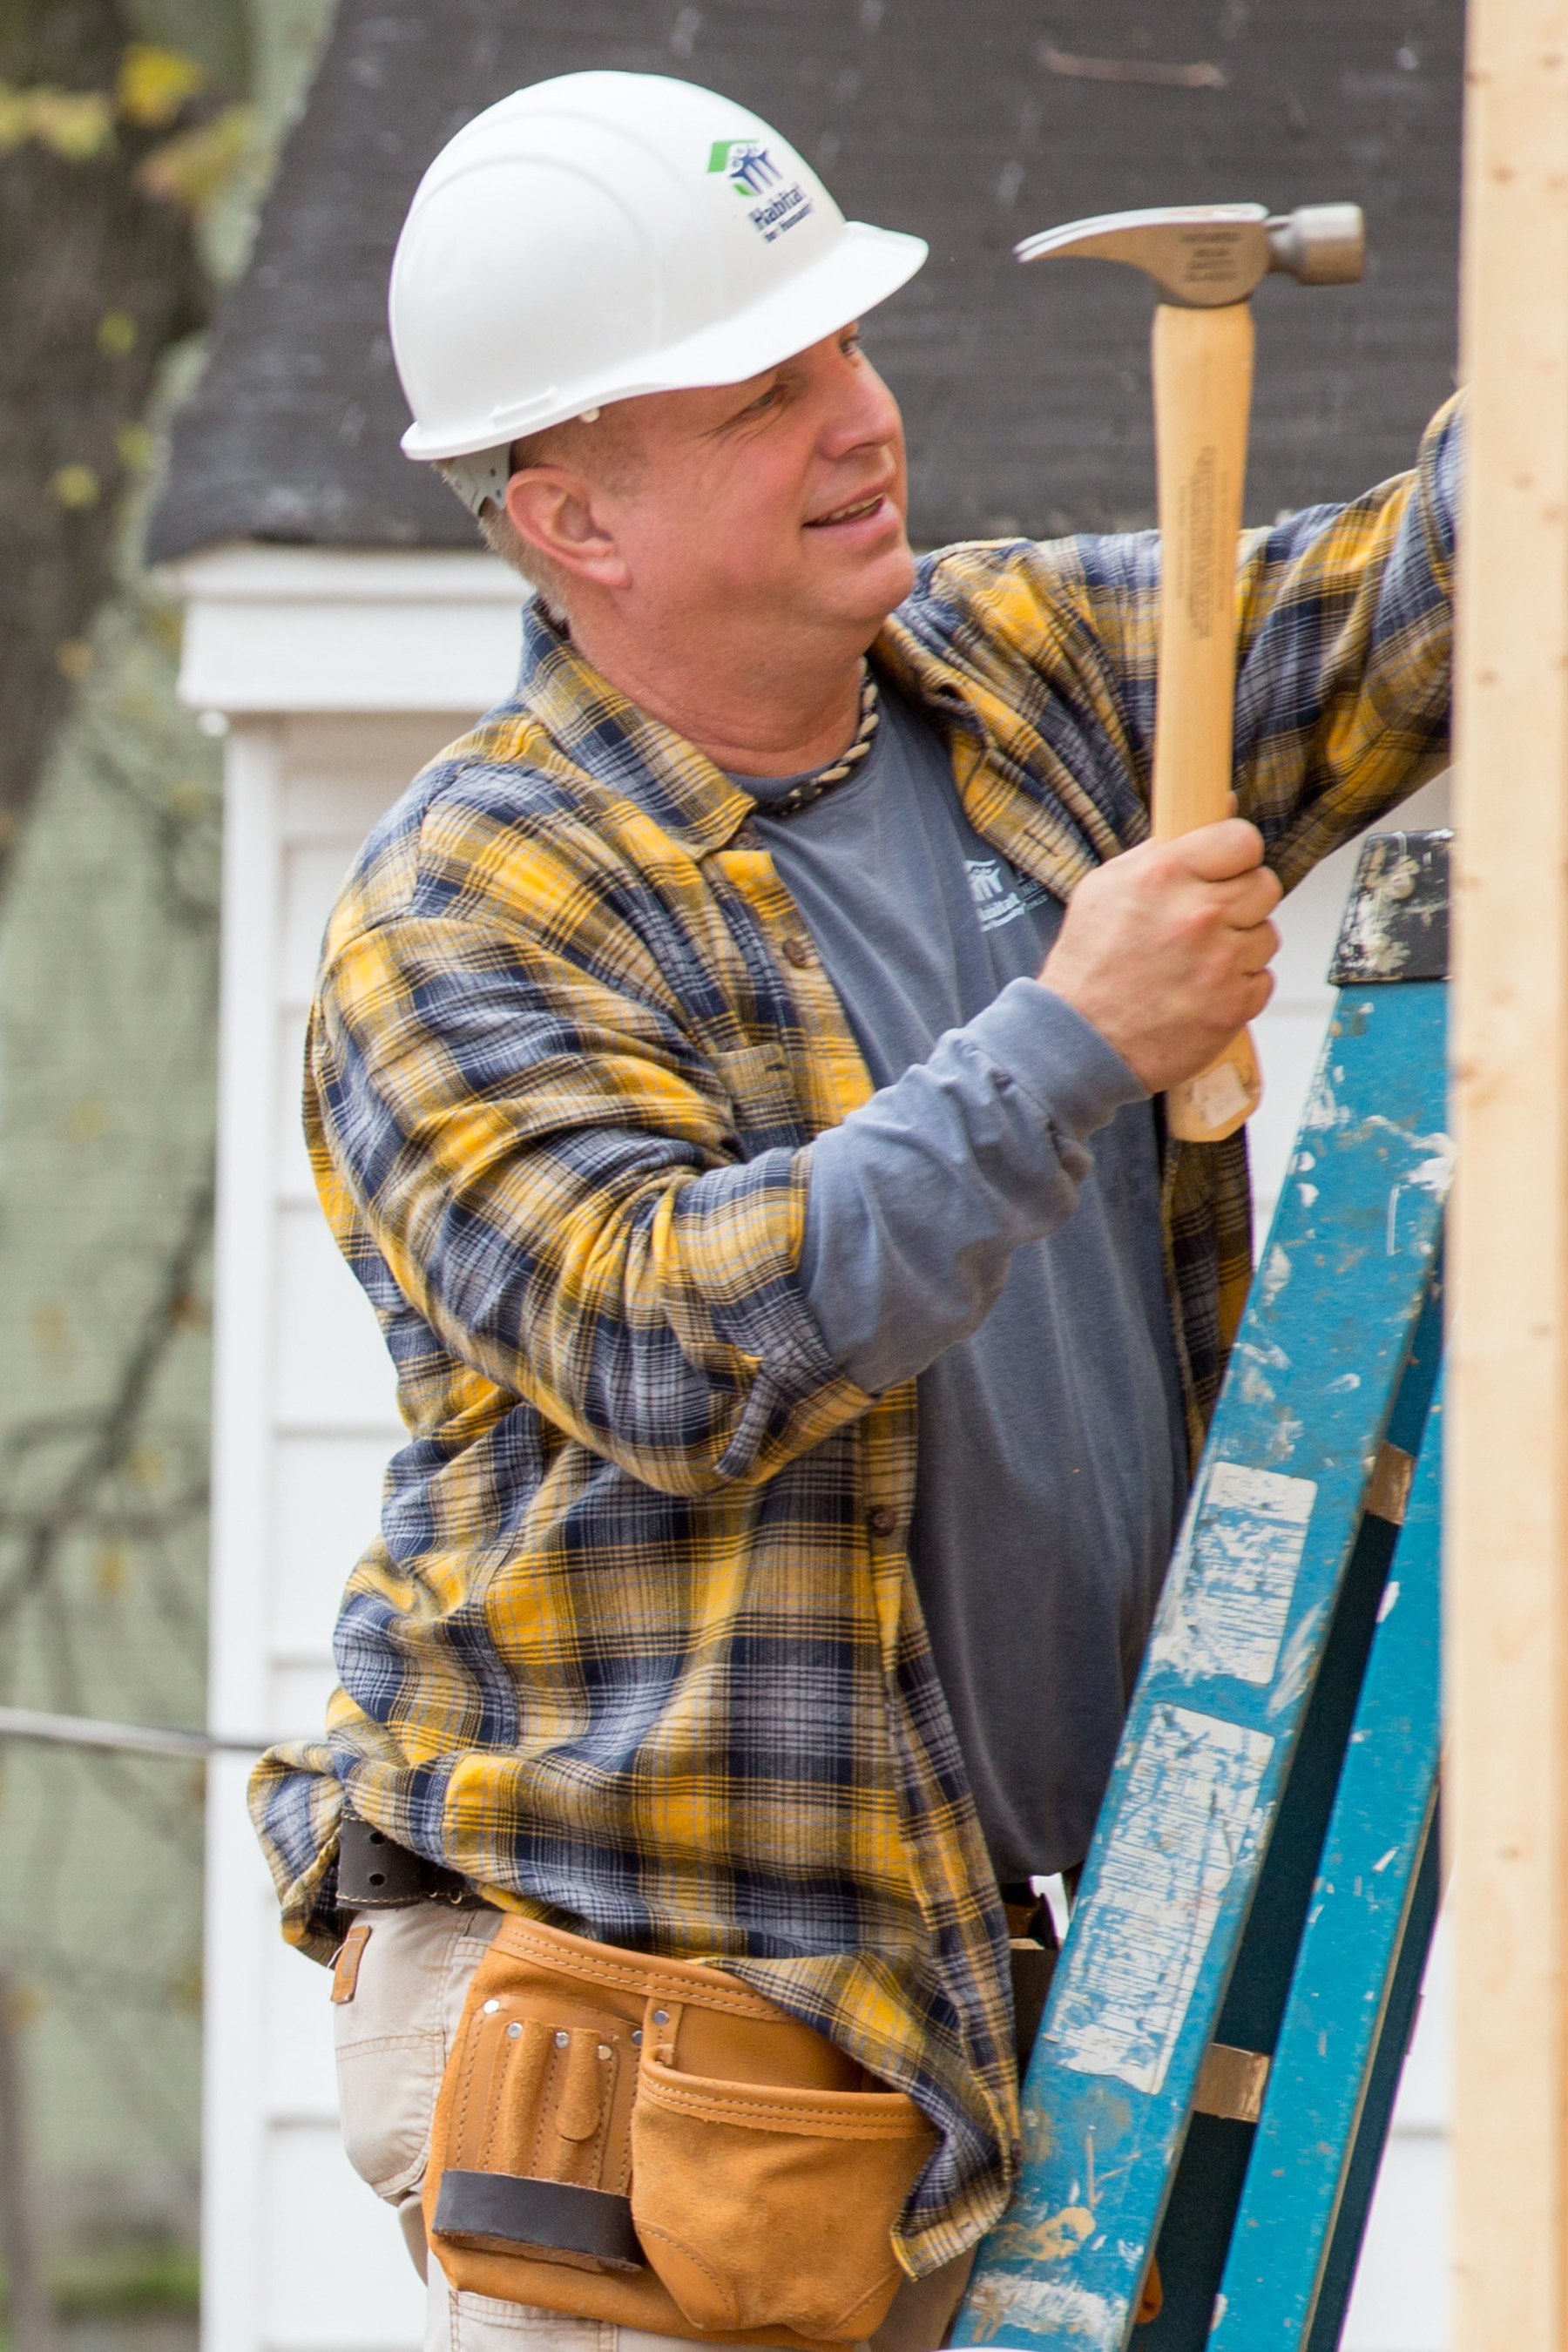 Country music stars Garth Brooks and Trisha Yearwood, along with former President Jimmy Carter and former first lady Rosalynn Carter, helped build a home today in Memphis, Tennessee, and joined Habitat for Humanity in announcing its 33rd Carter Work Project, which will take place in the city's Uptown neighborhood, Aug. 21-27, 2016.